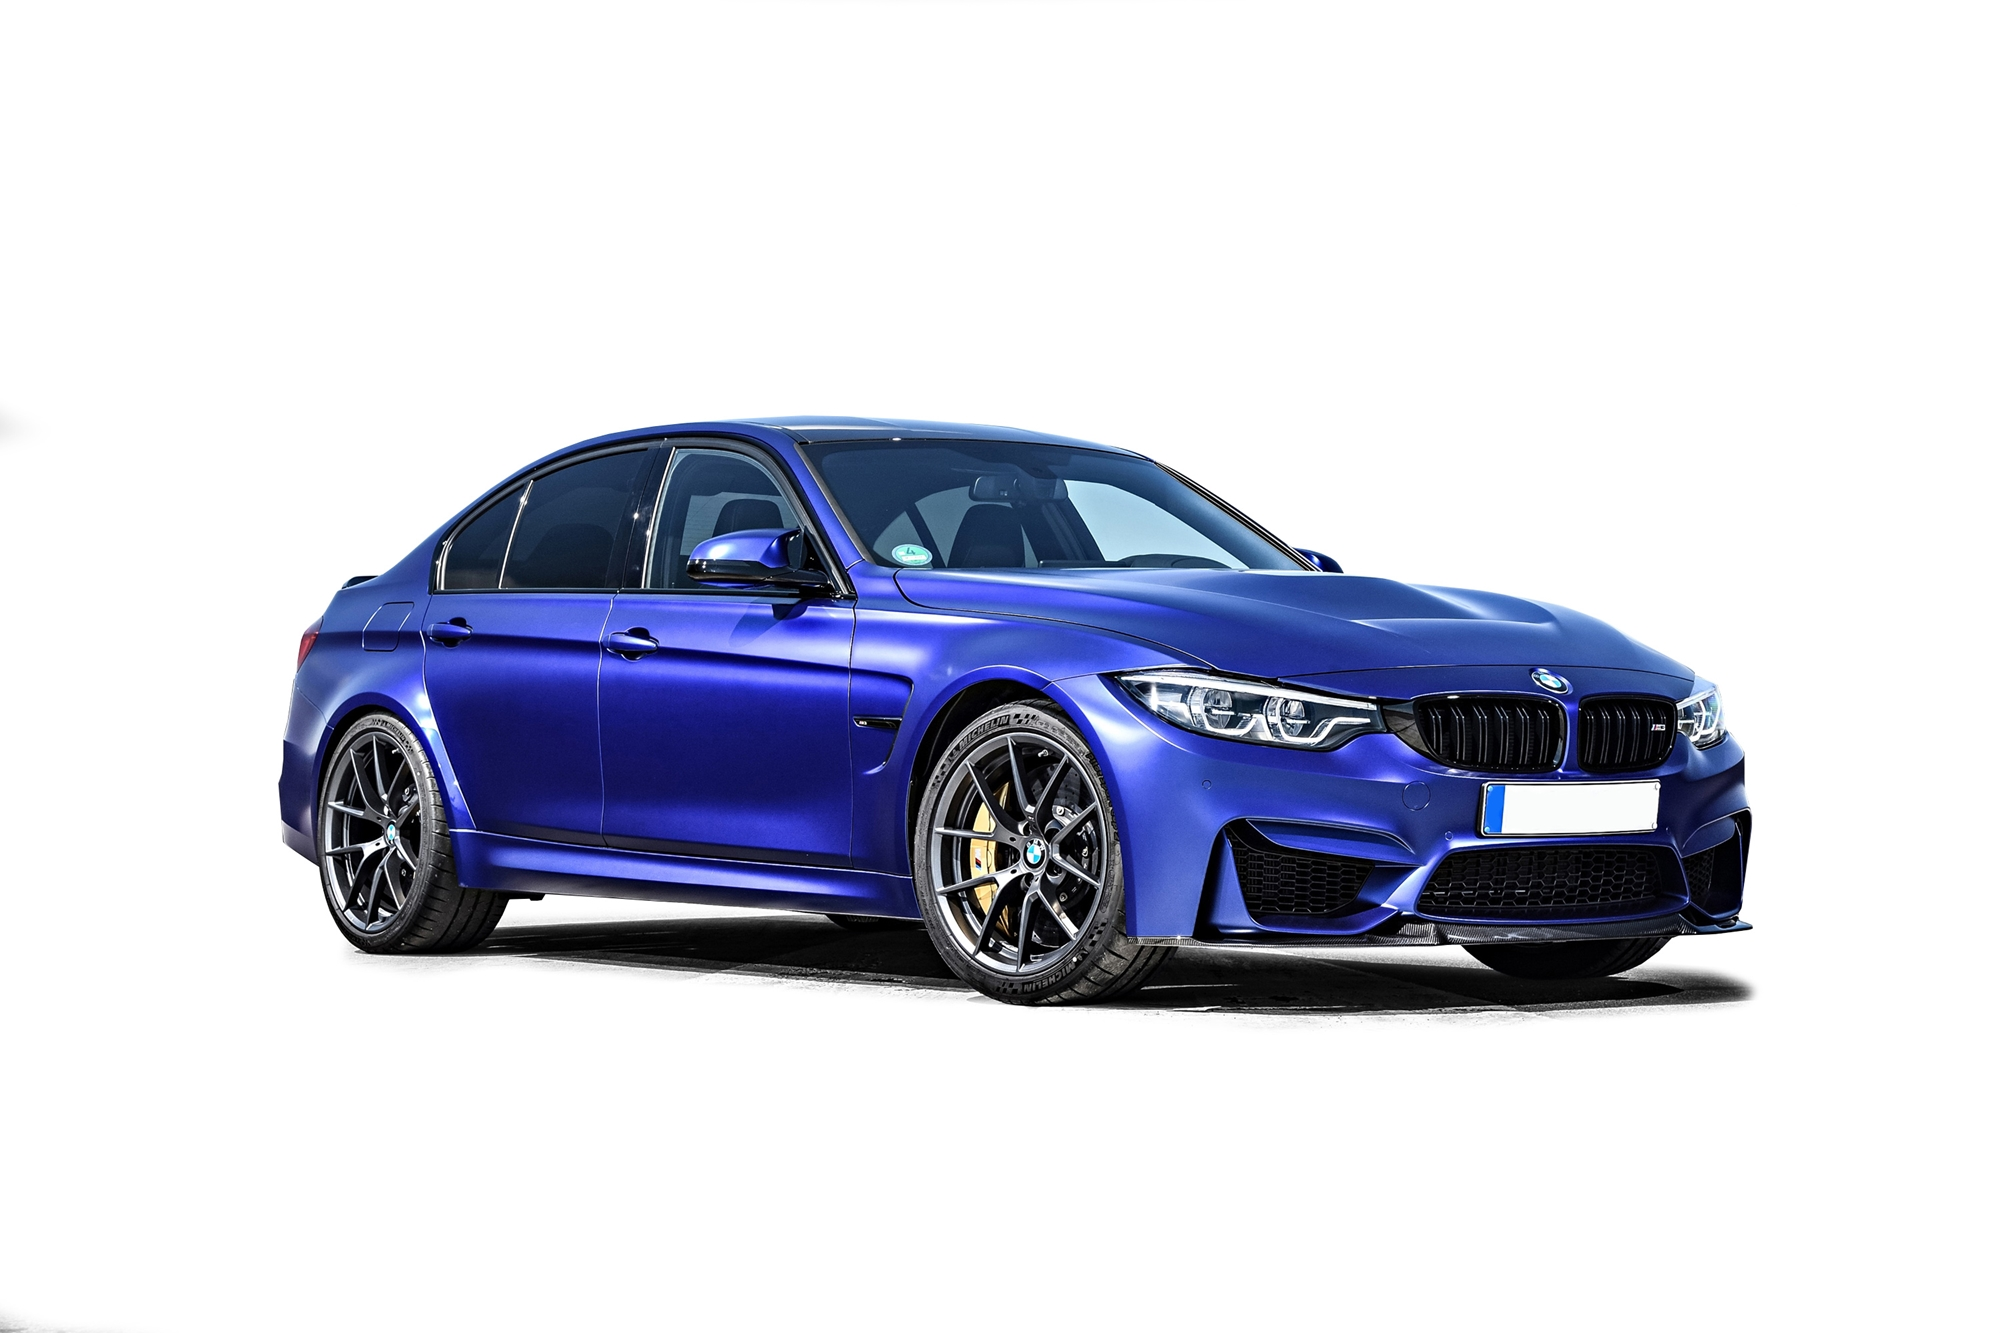 2018 Bmw M3 Cs Sedan Full Specs Features And Price Carbuzz